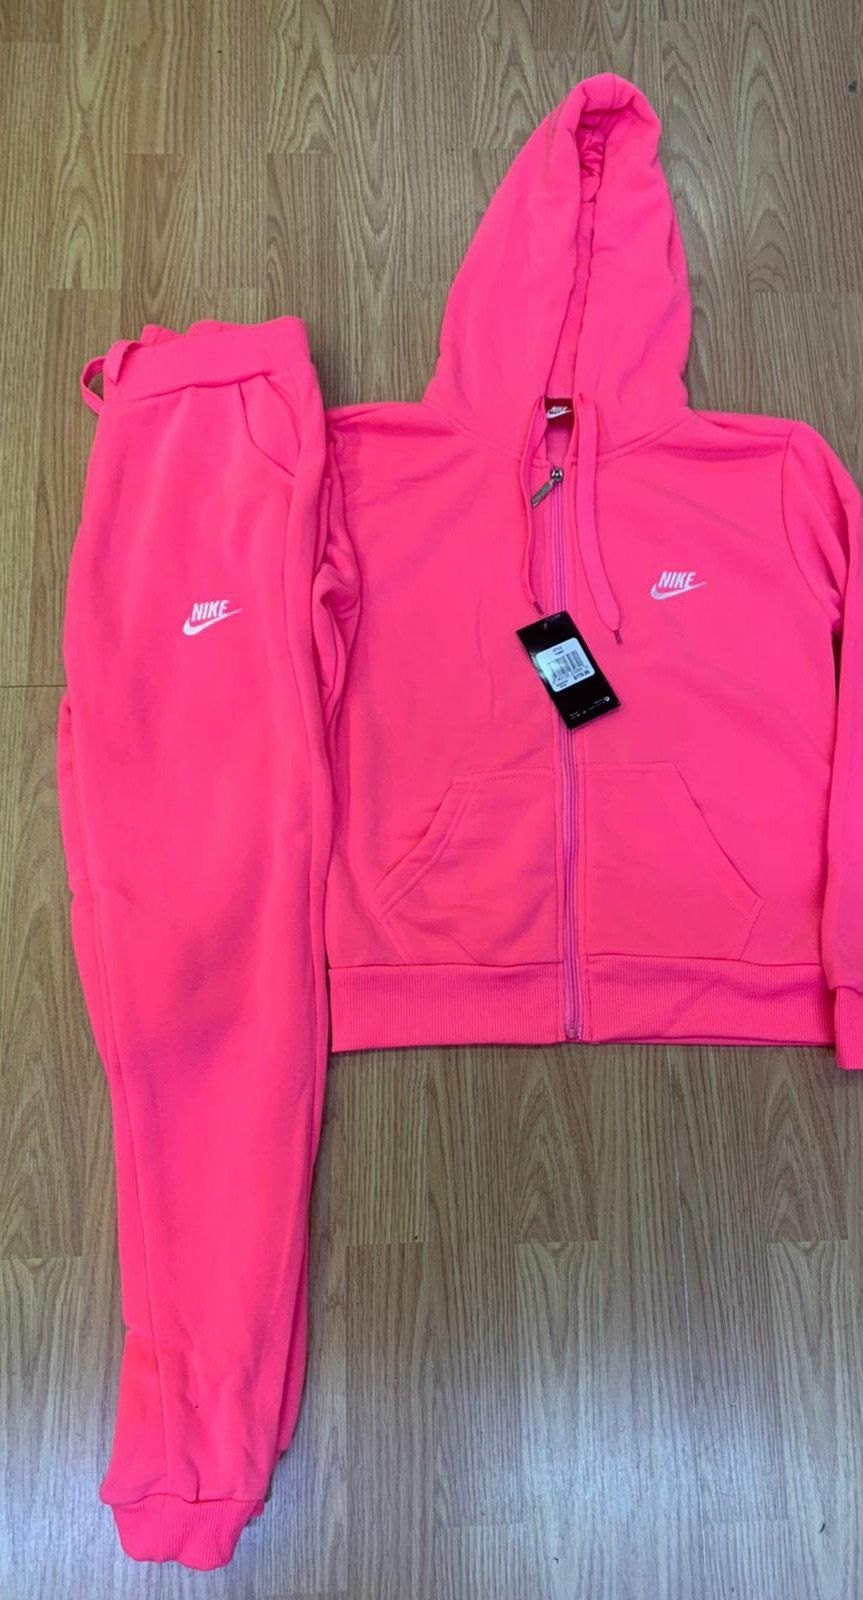 Sweatsuit, Nike sweat suits, Nike outfits